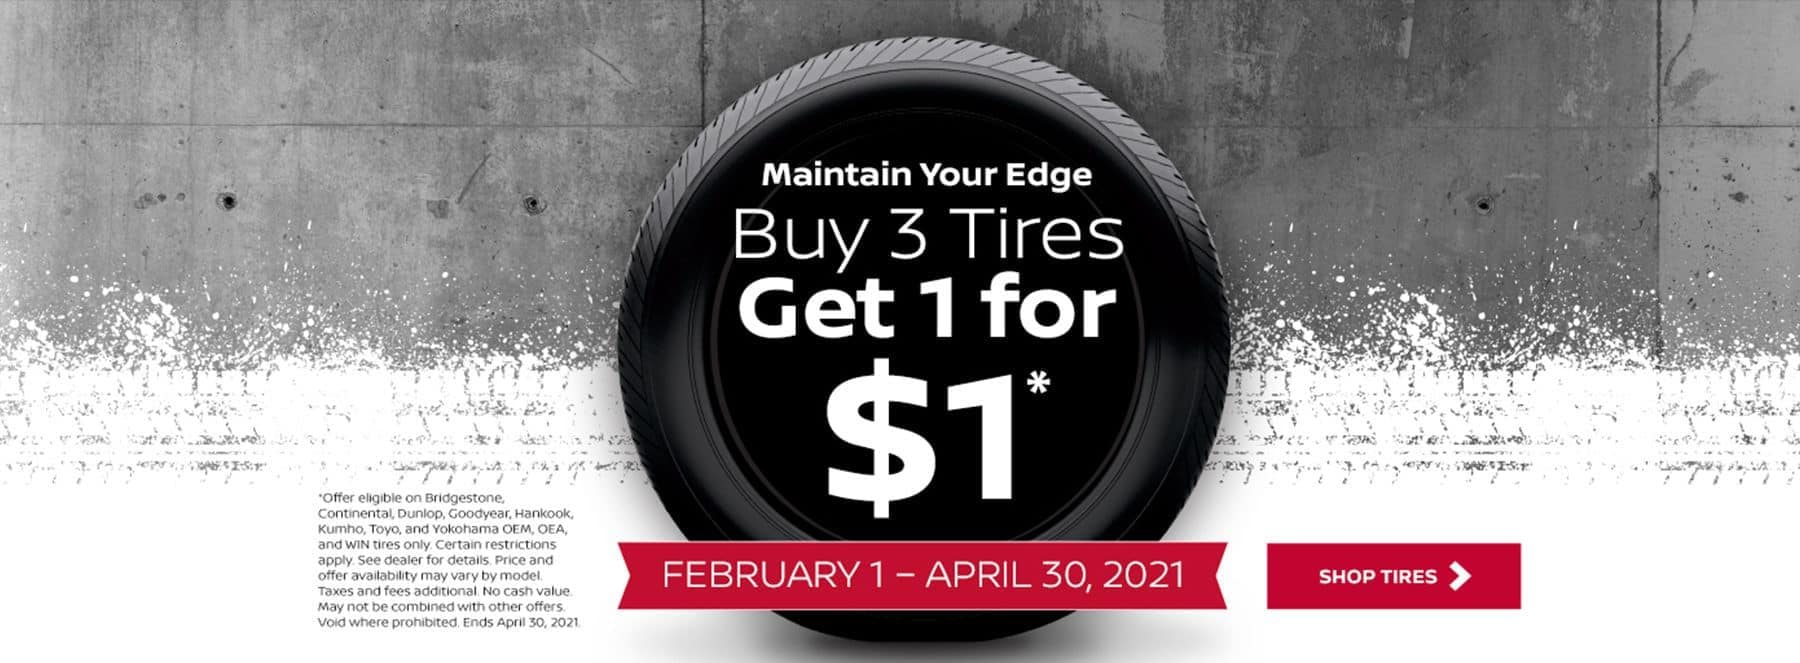 Nissan Tire Sale - Buy 3, get one for $1